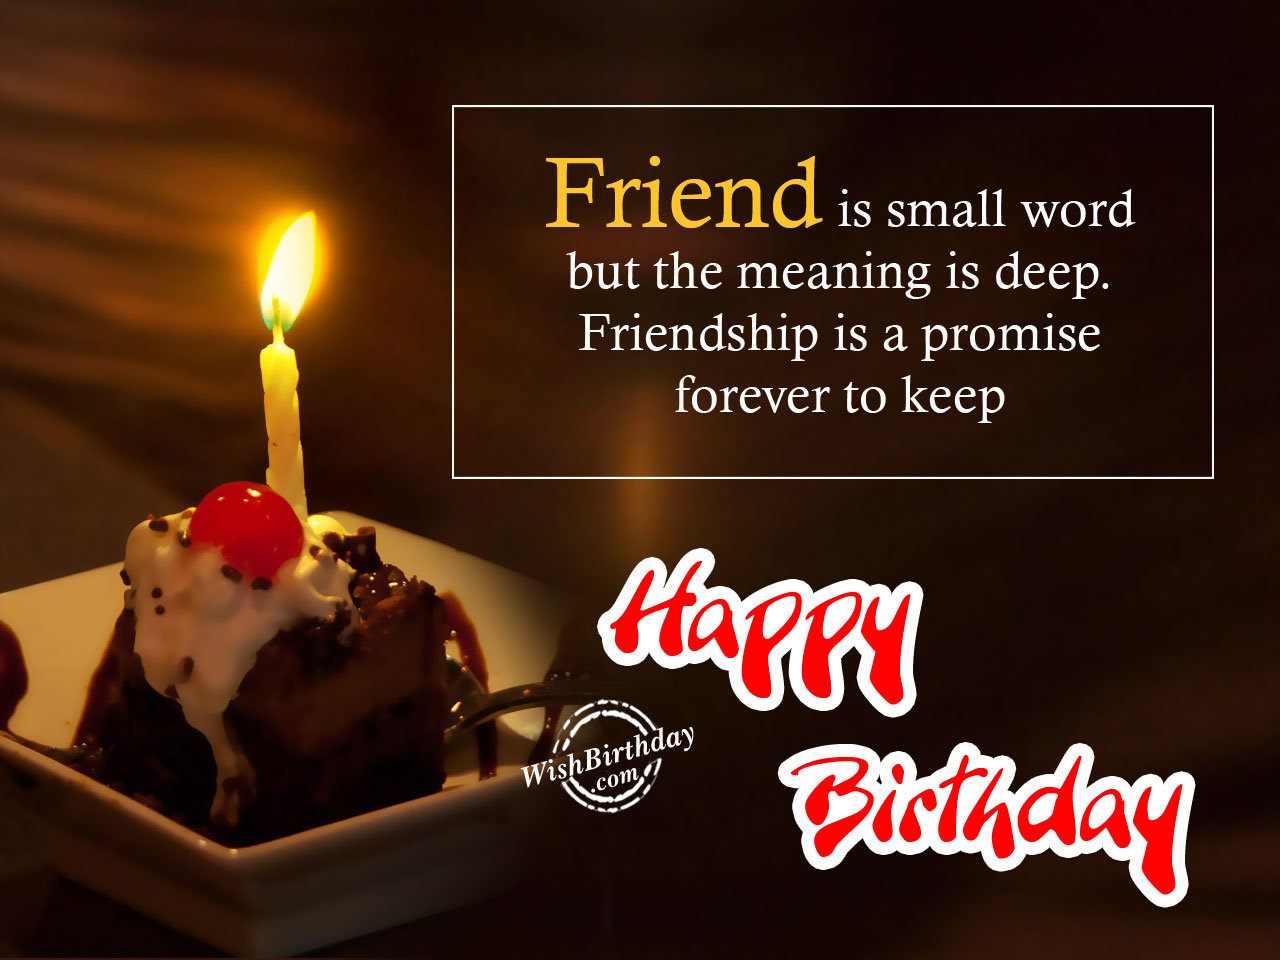 birthday wish meaning ; Friend-is-small-word-but-meaning-is-deep